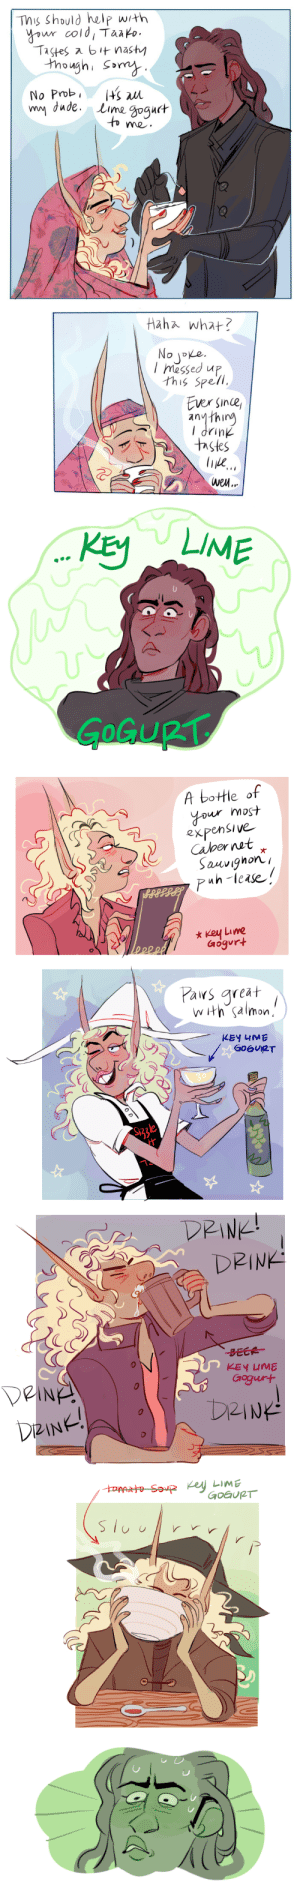 tazficrecs:  trashvarietyhour: janin (who wrote this comic) & i were re-listening to that episode where taako & kravitz share two bottles of wine at their pottery class, and we remembered this bit of canon trivia about taako and almost died  This is the comic that made me decide to listen to taz : This should help with  your cold, Taako  Tastes a bi nasty  though, Somy  (ς W  ww dade. Lime gogurt  to me  No Prob  Haha what?  No joe  Imessed up  this Spell  Ever since  anything  7uiup  tastes  wen...   LIME  KEY  GOGURT   A bottle of  your most  expensive  Calber net  Sauvighon  puh-lease  key Lime  Gogurt  eee  Pars great  WHth salmon  KEY 4ME  G0GUIRT  S33le   DRINK  DRINK  BECA  KEY UME  DeINA  DeINE!  Gogurt  DRINK  toPARHo SovpR Key LimE  GOGURT  Slu tazficrecs:  trashvarietyhour: janin (who wrote this comic) & i were re-listening to that episode where taako & kravitz share two bottles of wine at their pottery class, and we remembered this bit of canon trivia about taako and almost died  This is the comic that made me decide to listen to taz